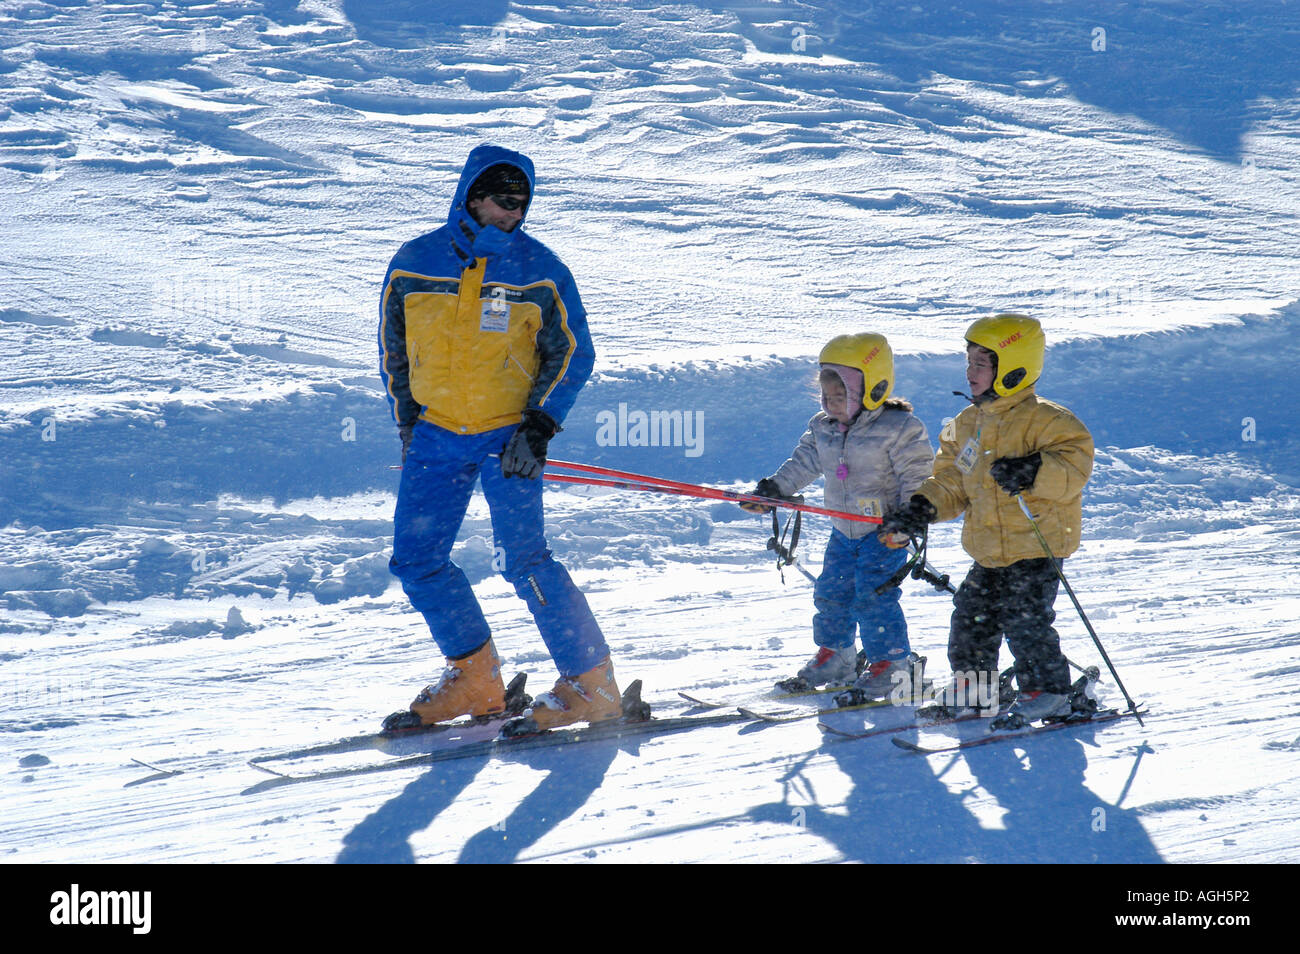 ski instructor with children, Val Thorens, French Alps, France - Stock Image